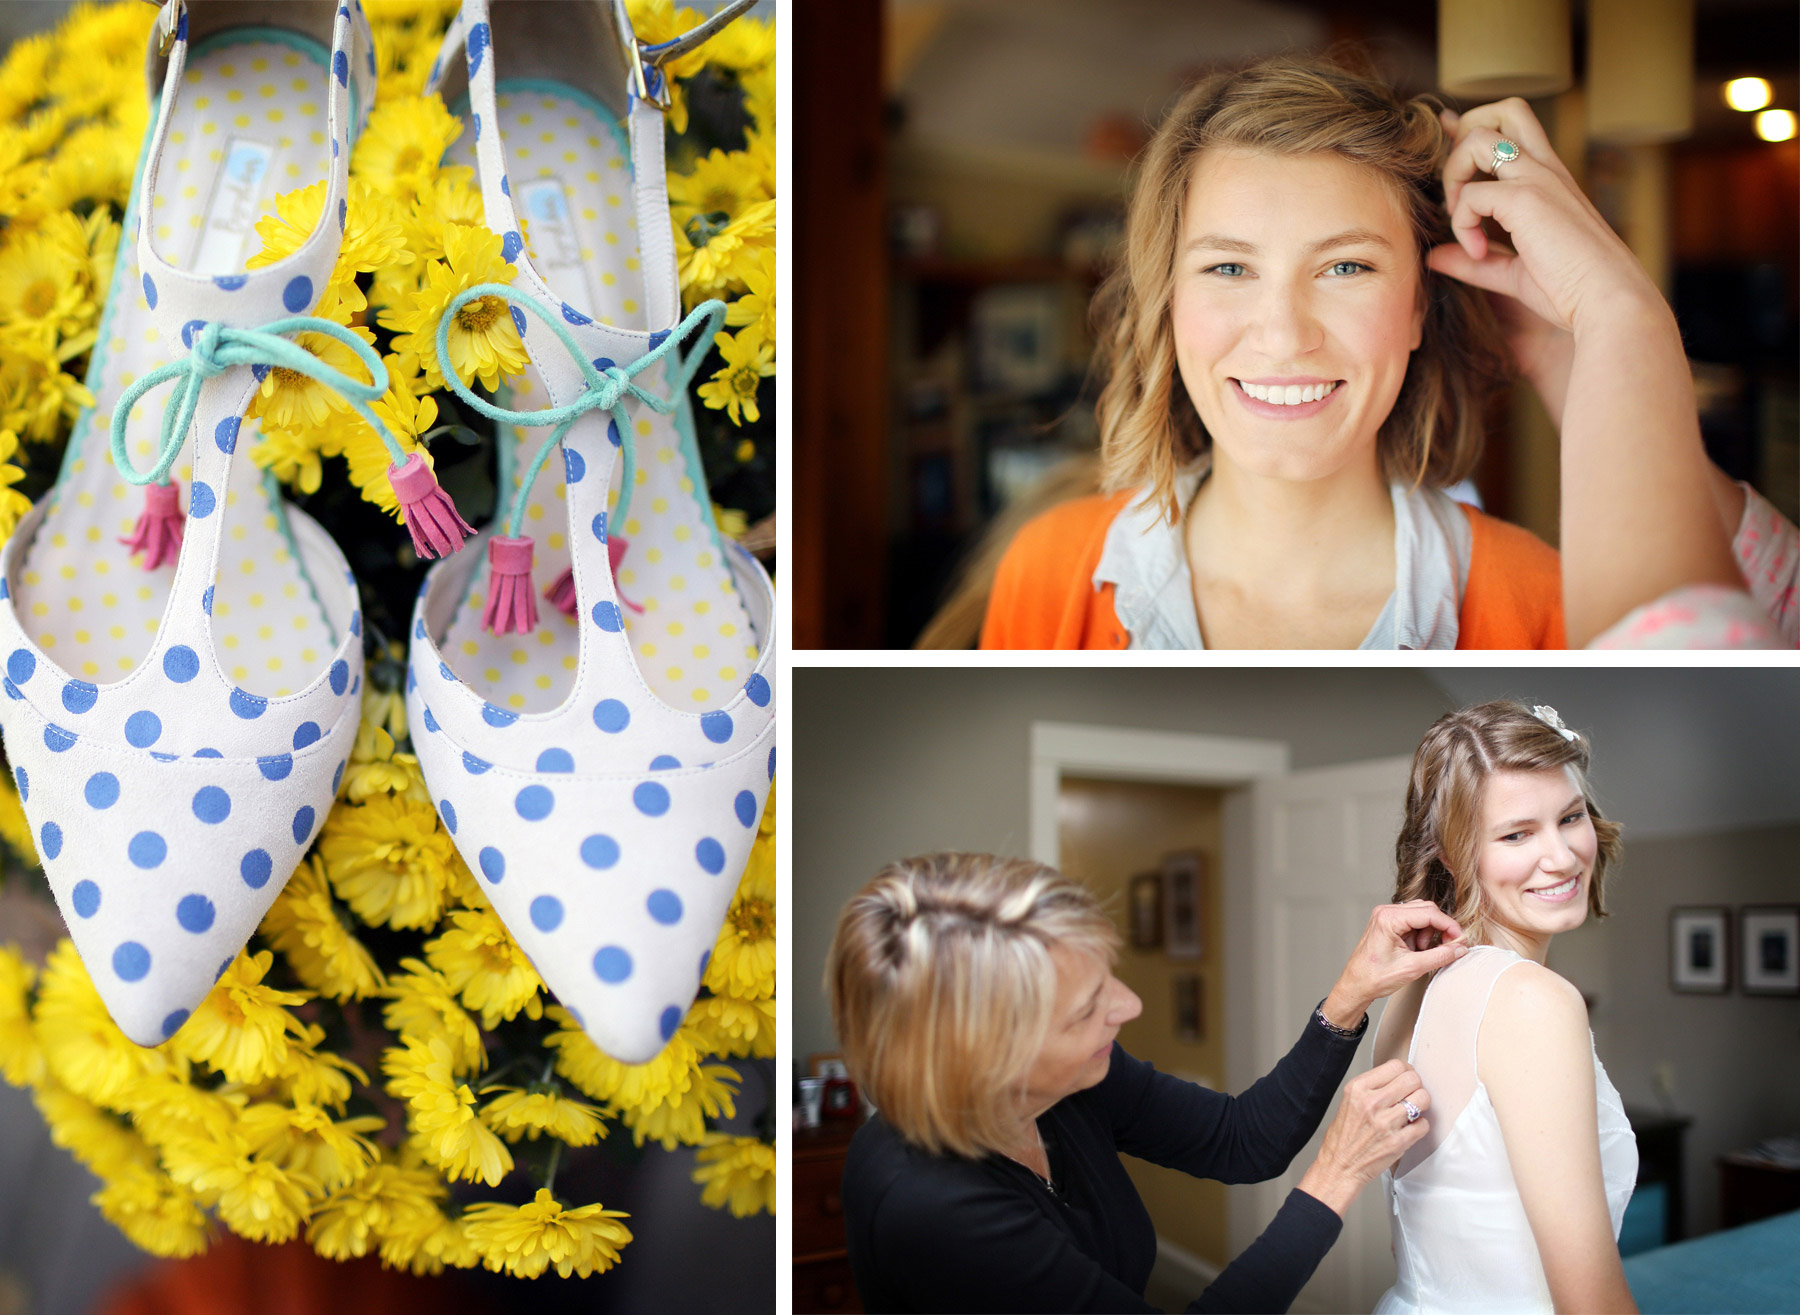 01-Minneapolis-Minnesota-Wedding-Photography-by-Vick-Photography-Fall-Colors-Autumn-Leaves-Polkadot-Shoes-Madeline-&-Matt.jpg